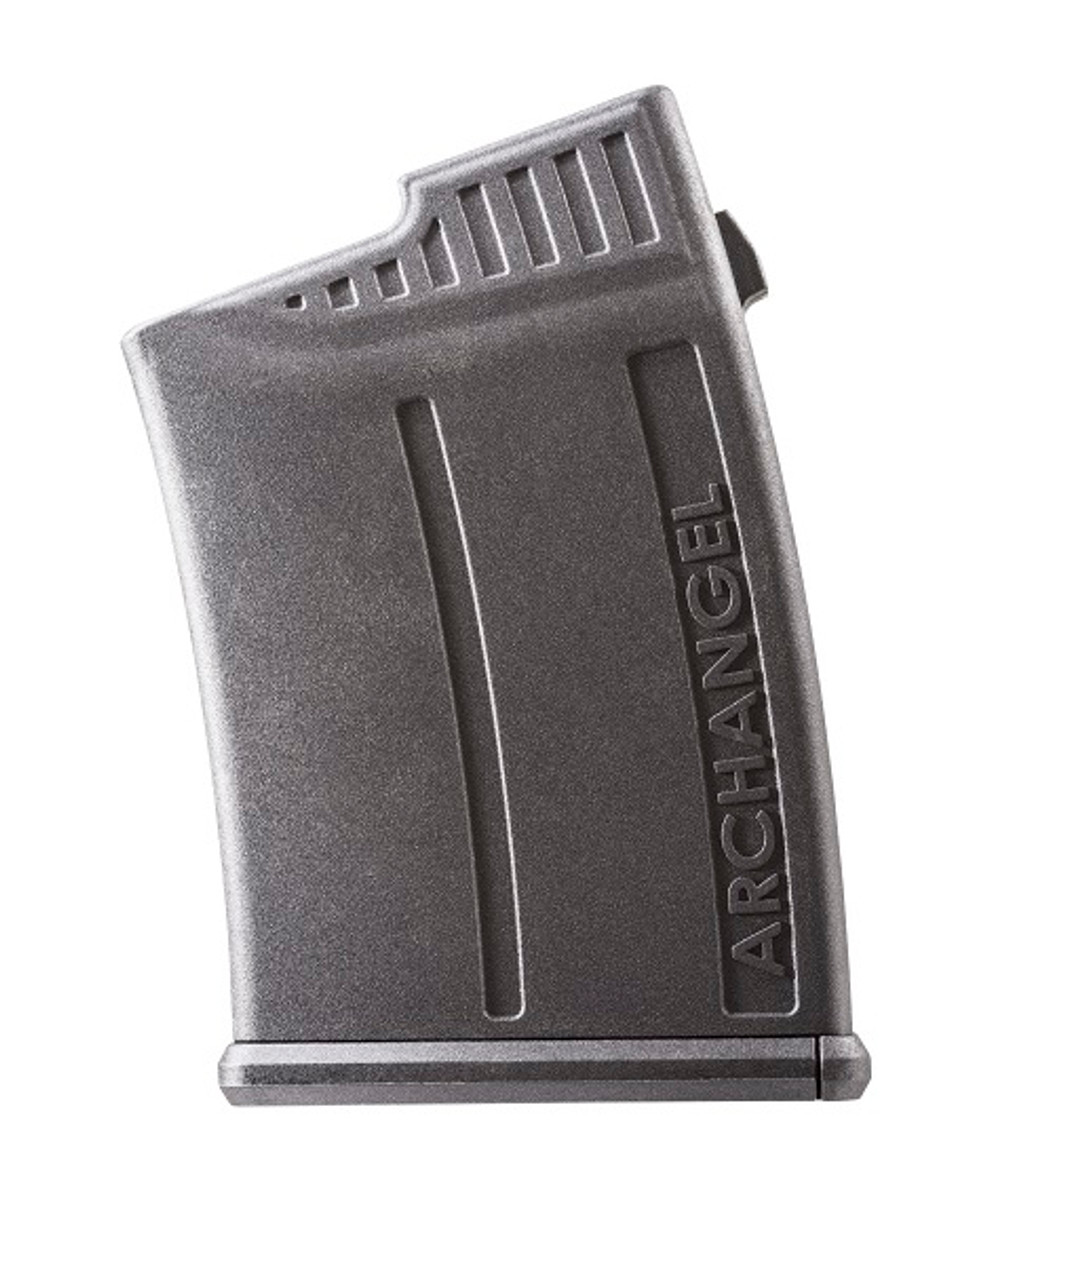 Archangel® 8mm TYPE B Magazine for AA98 and AAT3 (15) Rd - Black Polymer